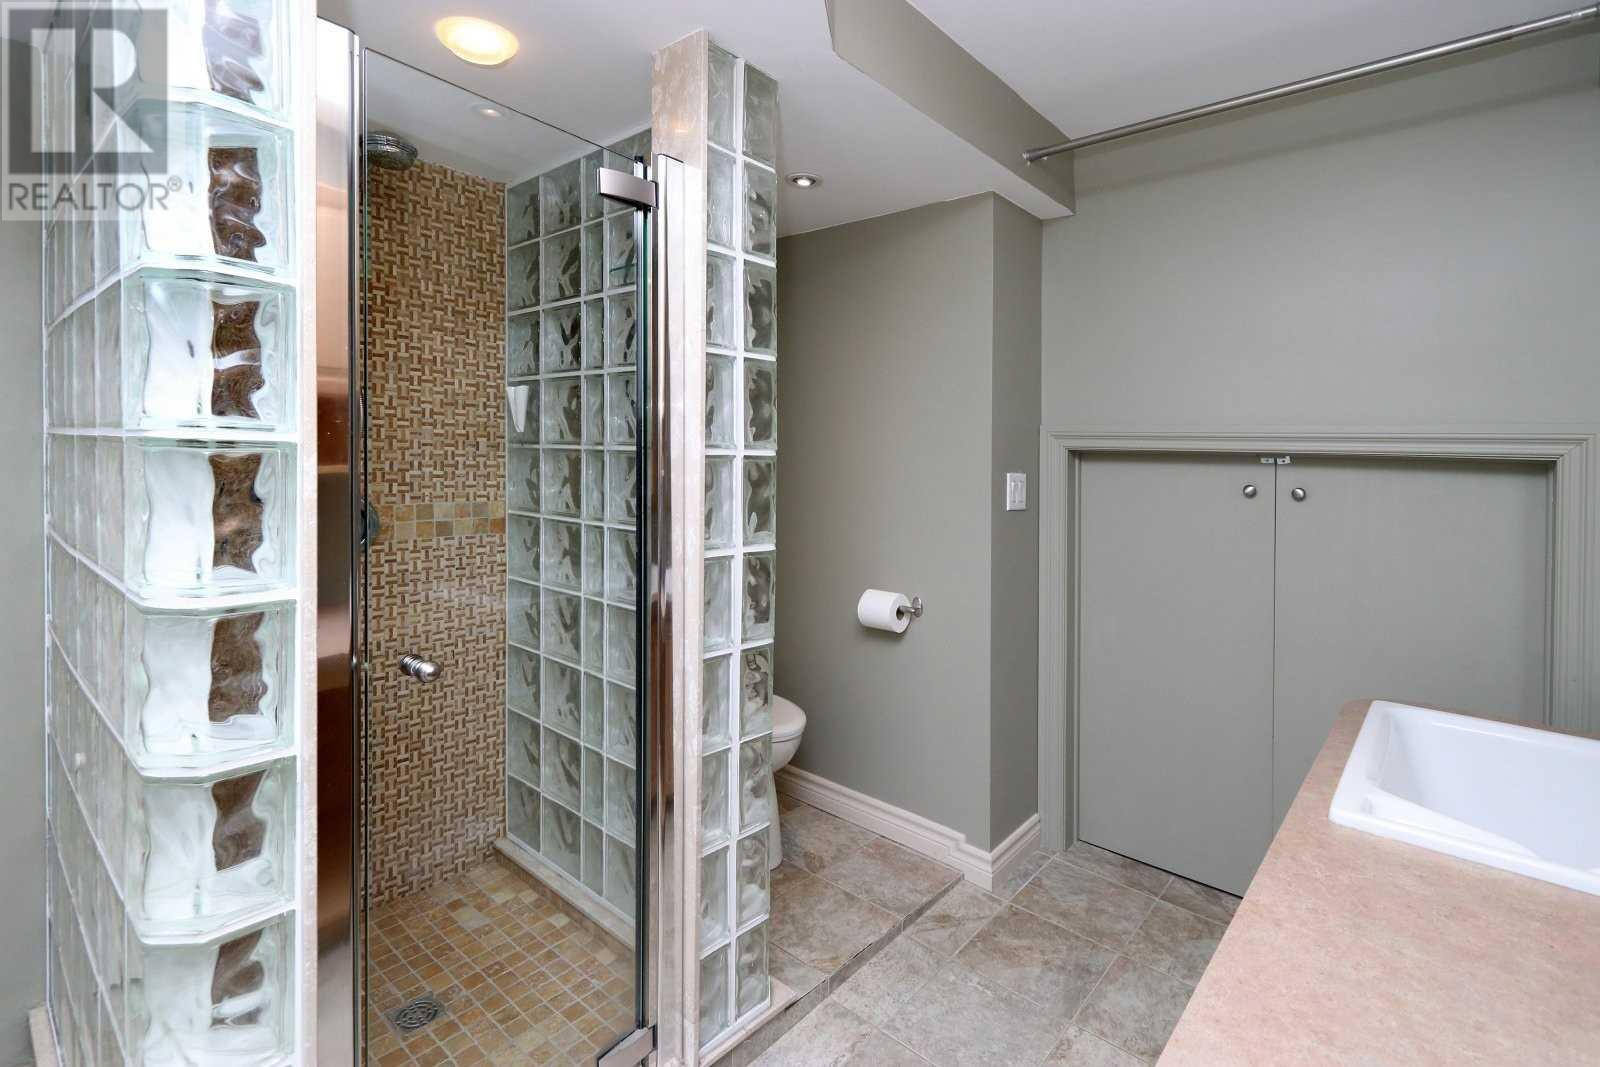 2524 Windjammer Rd, Mississauga, Ontario  L5L 1H9 - Photo 17 - W4675885